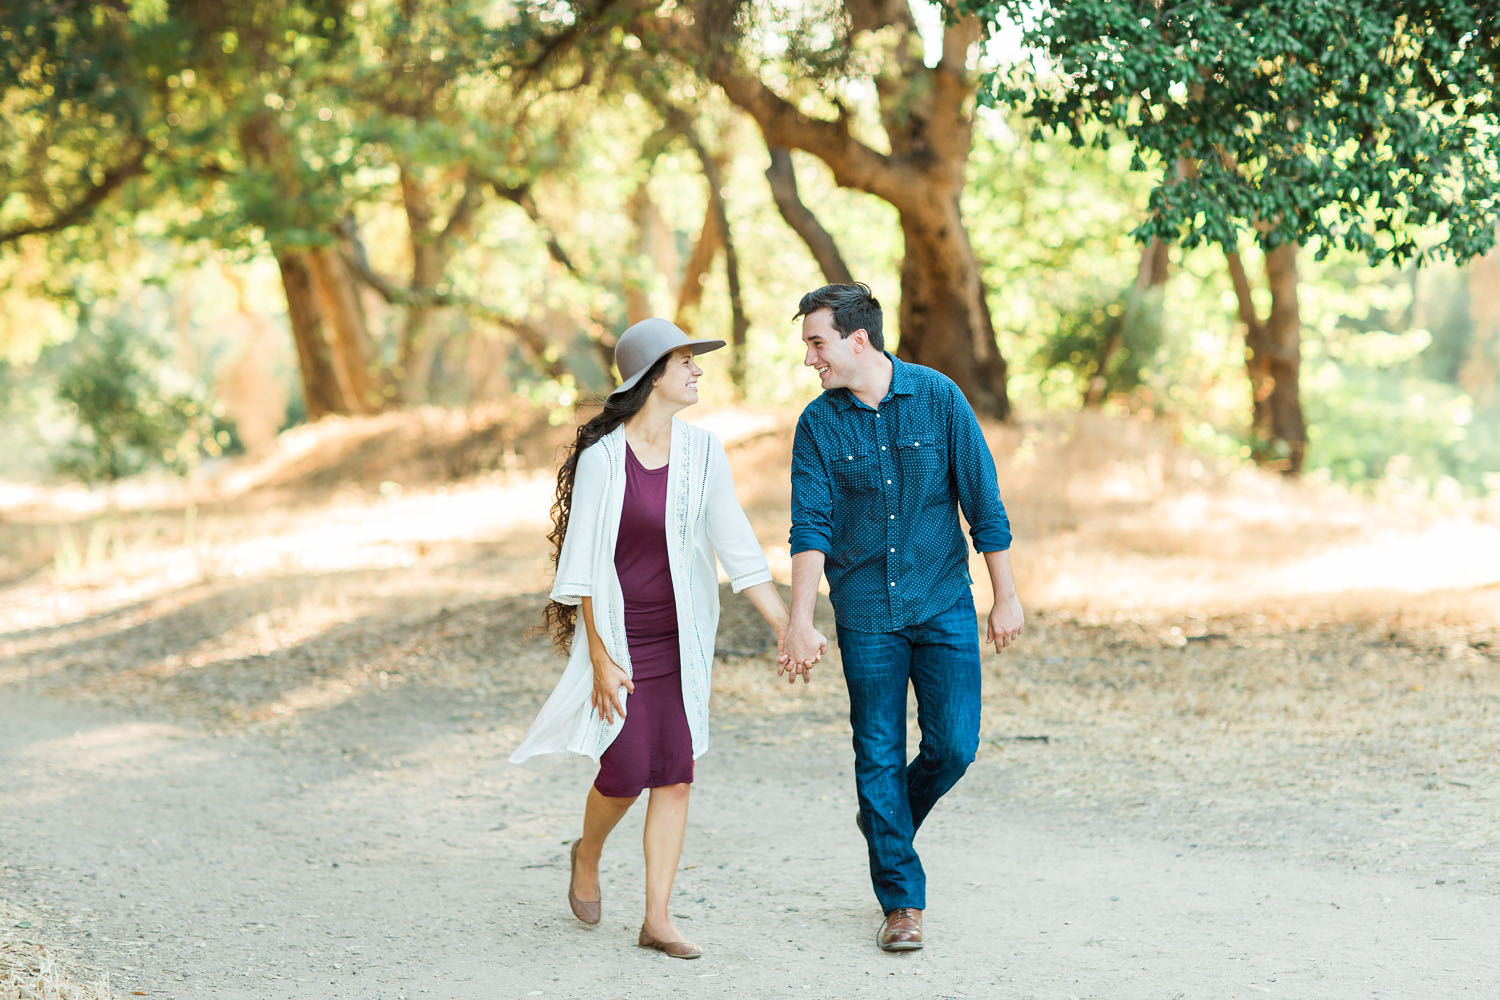 Brittany and Brett Engaged - Placerita Canyon Engagement Session Photography - How He Asked